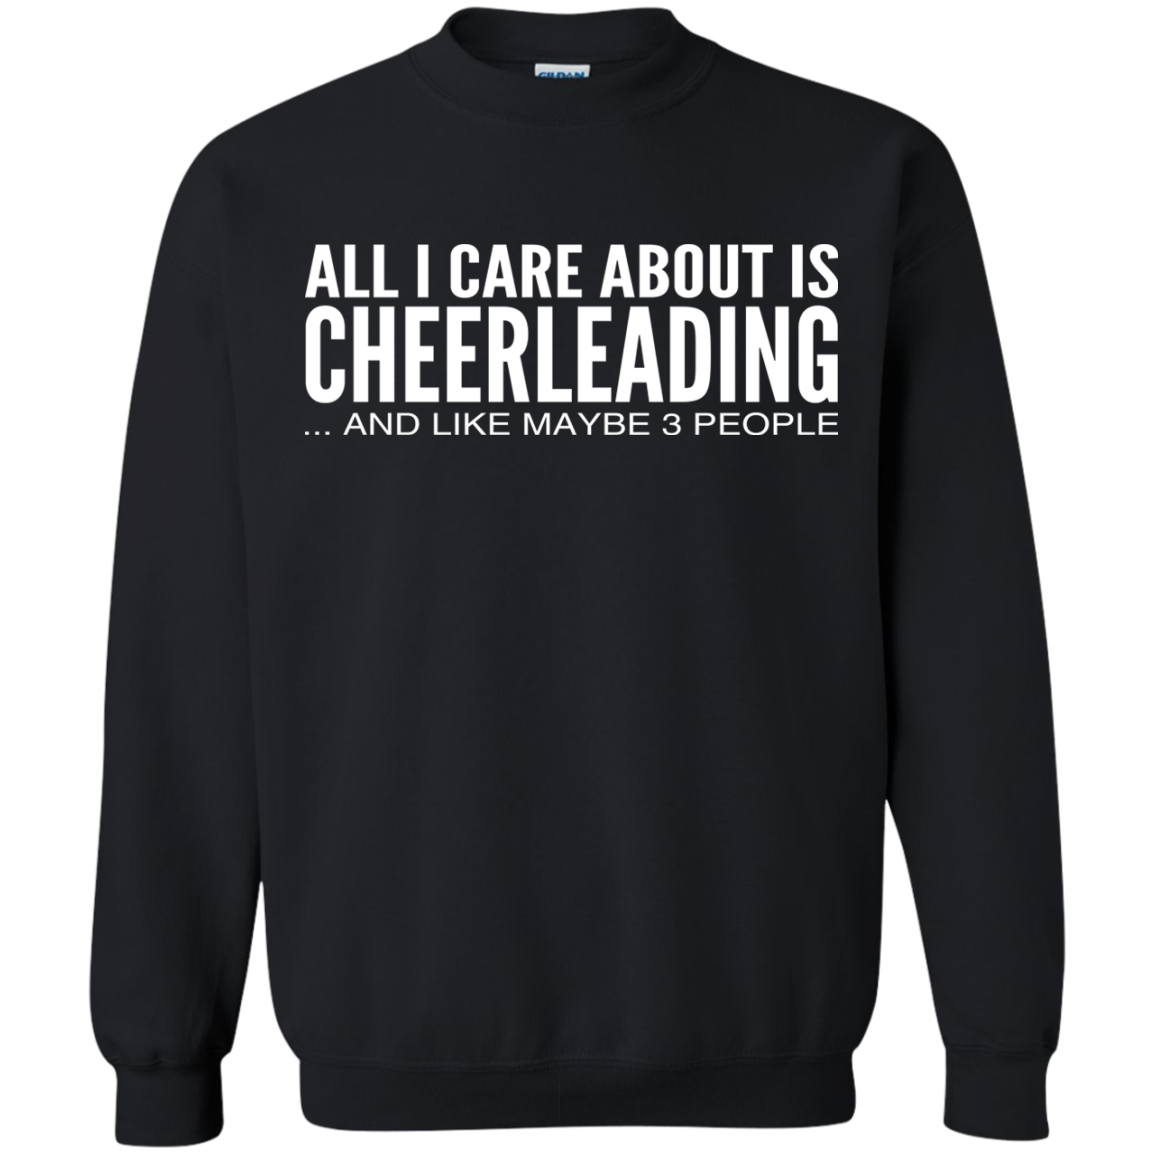 All I Care About Is Cheerleading And Like Maybe 3 People Sweatshirts